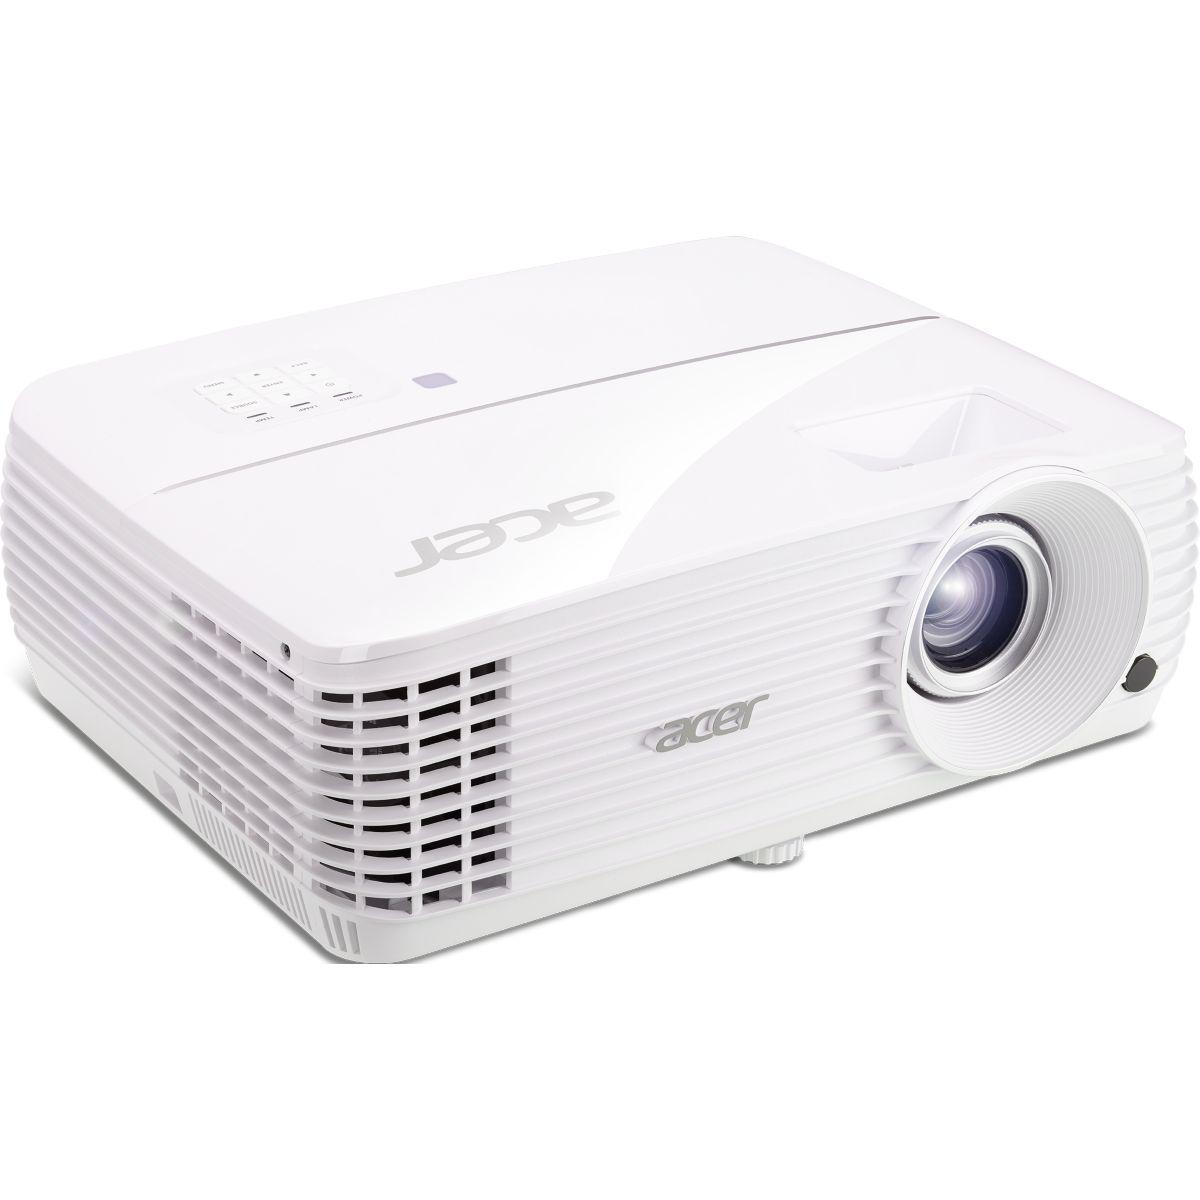 Vid�oprojecteur home cin�ma acer v6810 4k uhd (photo)